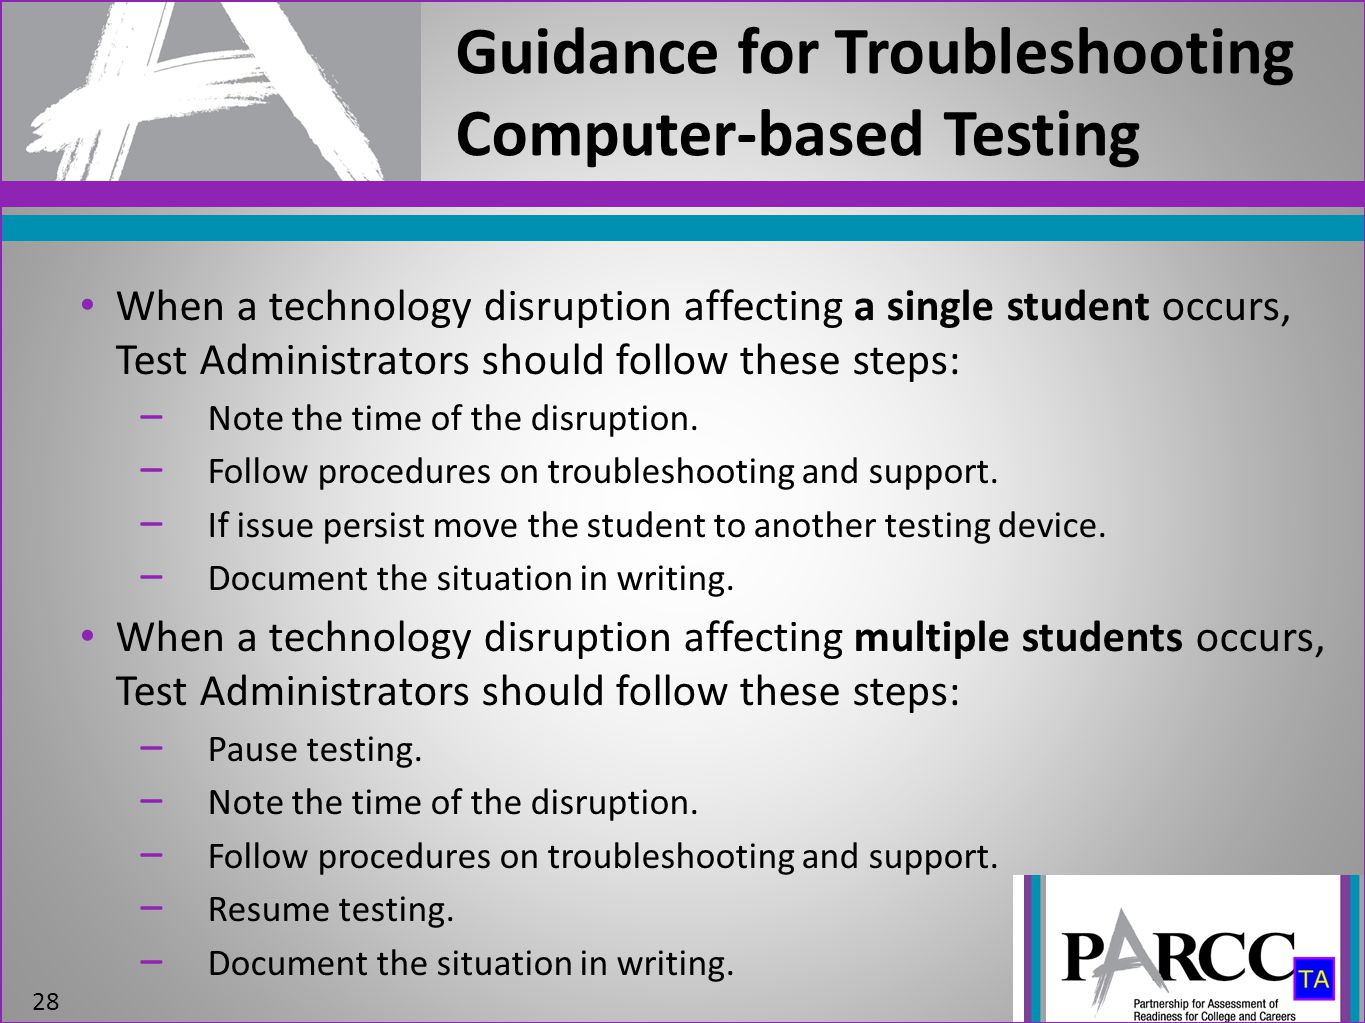 Guidance for Troubleshooting Computer-based Testing